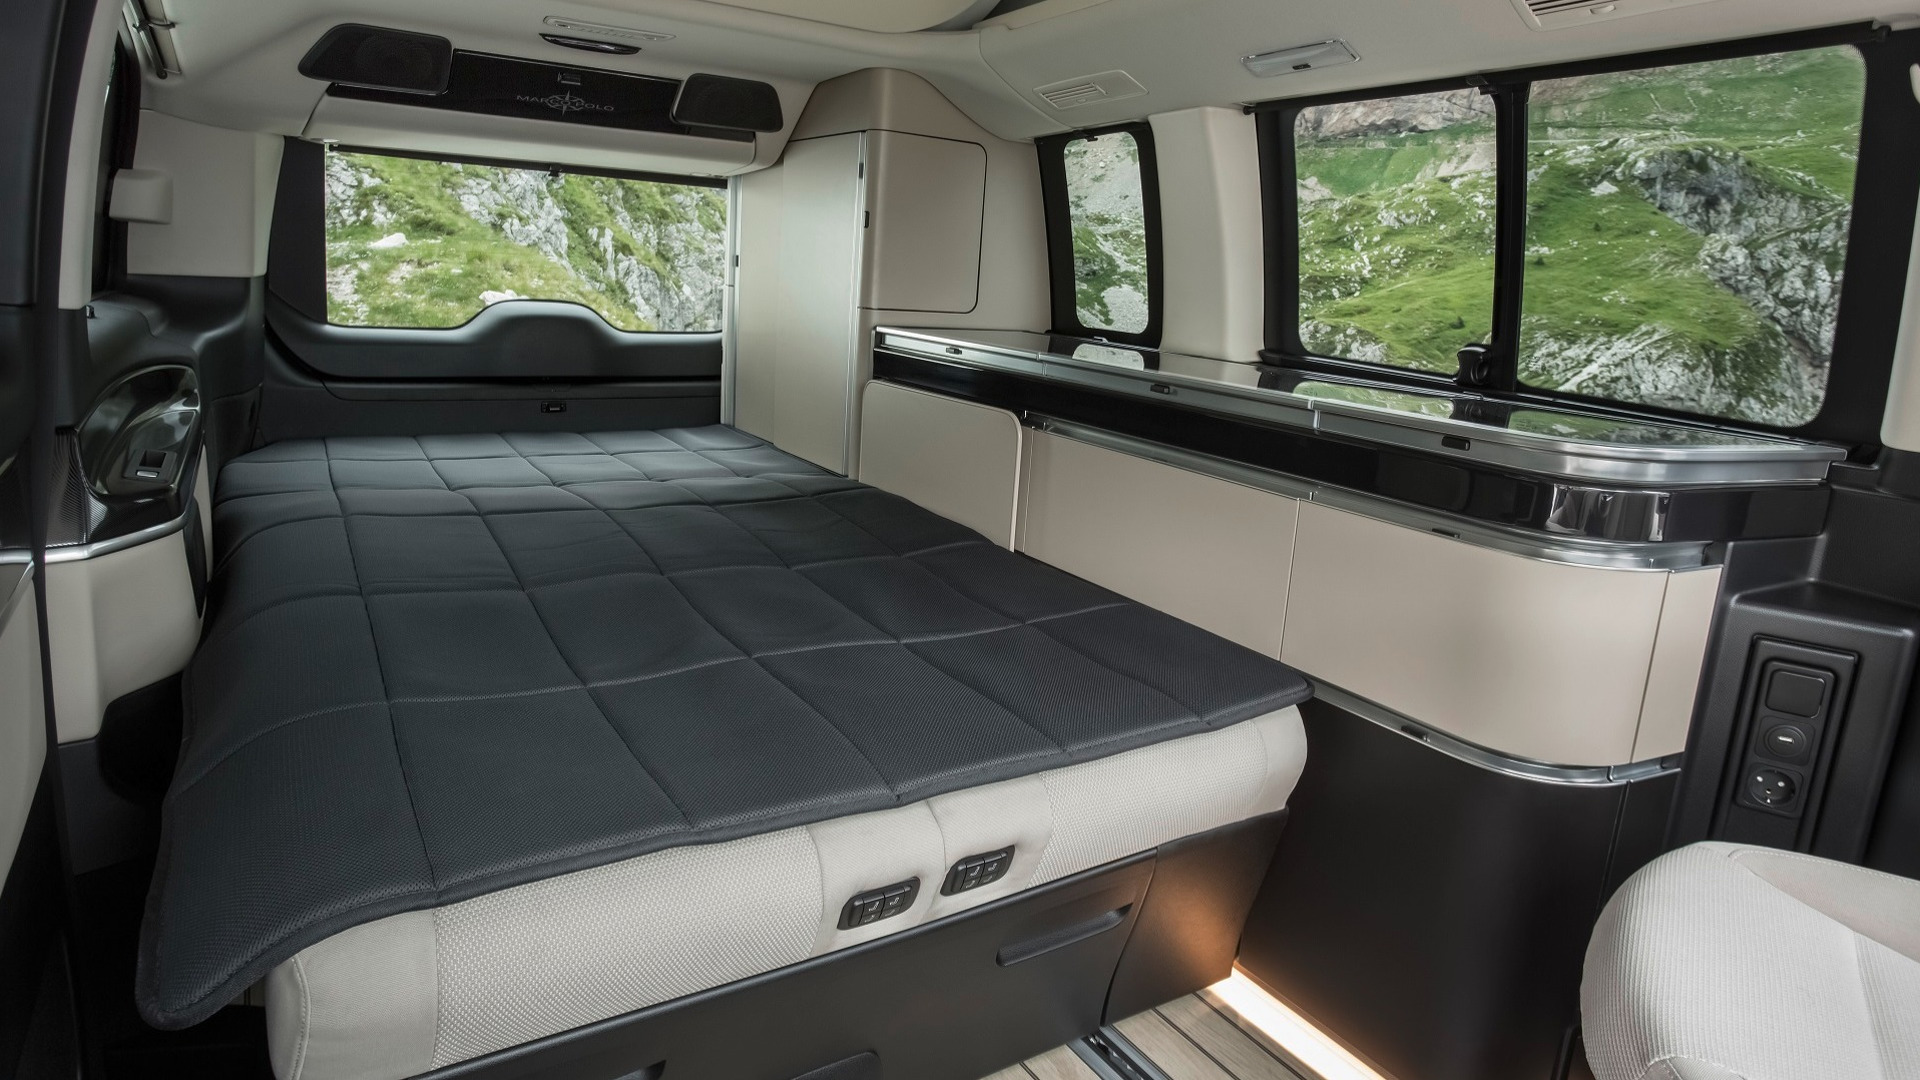 Posh Mercedes Marco Polo camper has \'yacht wood\' floors